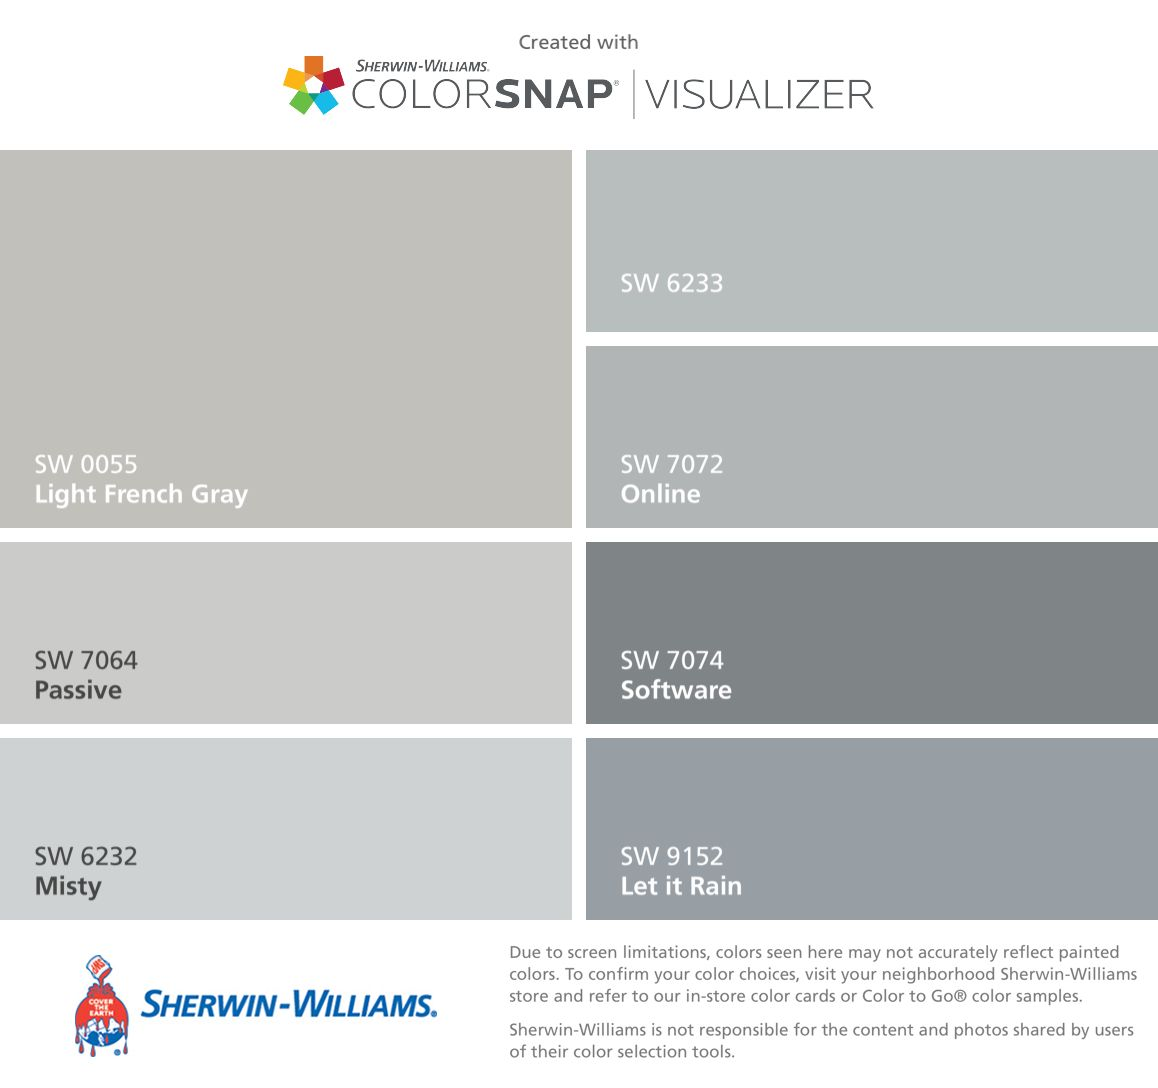 Actual Colors I Will Use To Paint The House Light French Gray Sw 0055